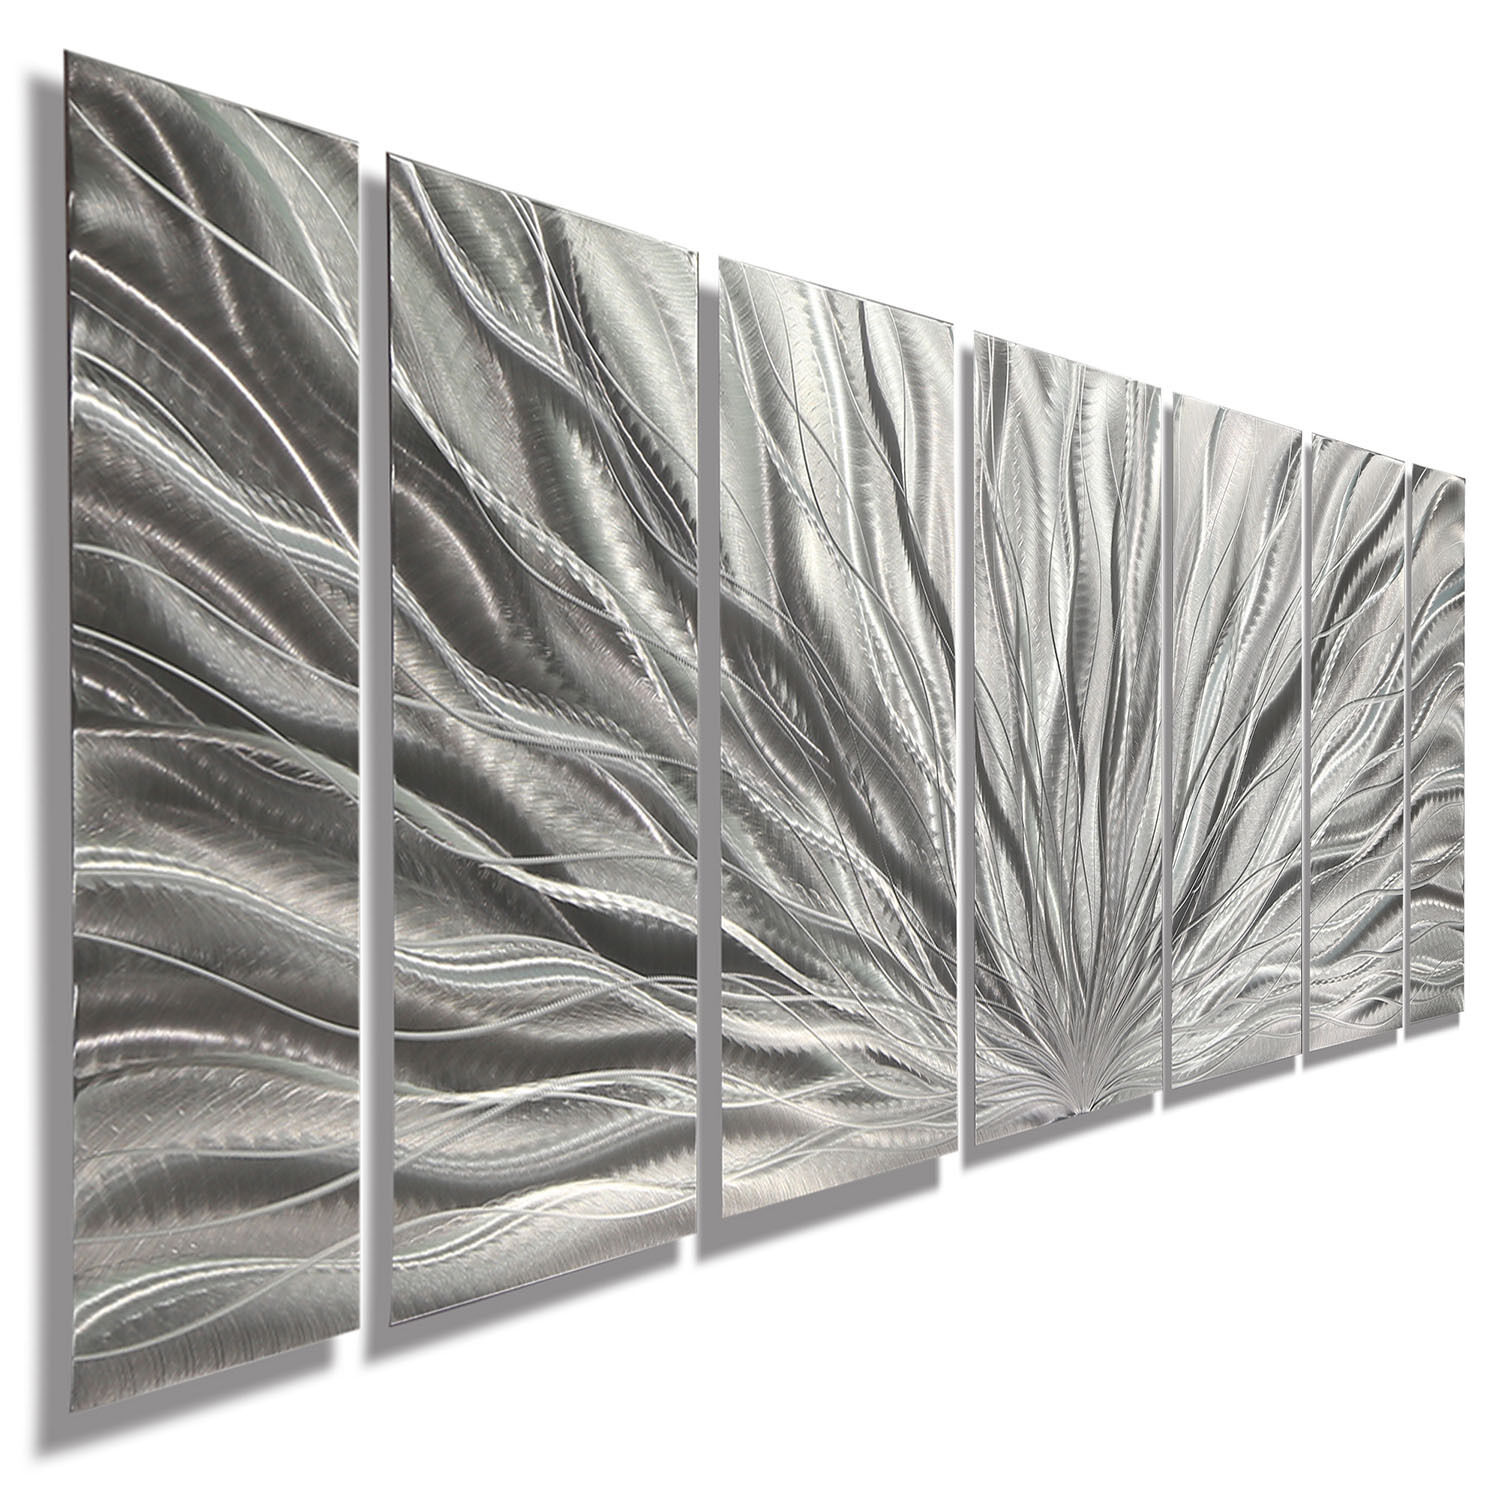 Statements2000 Modern Metal Wall Art Abstract Decor by Jon ...